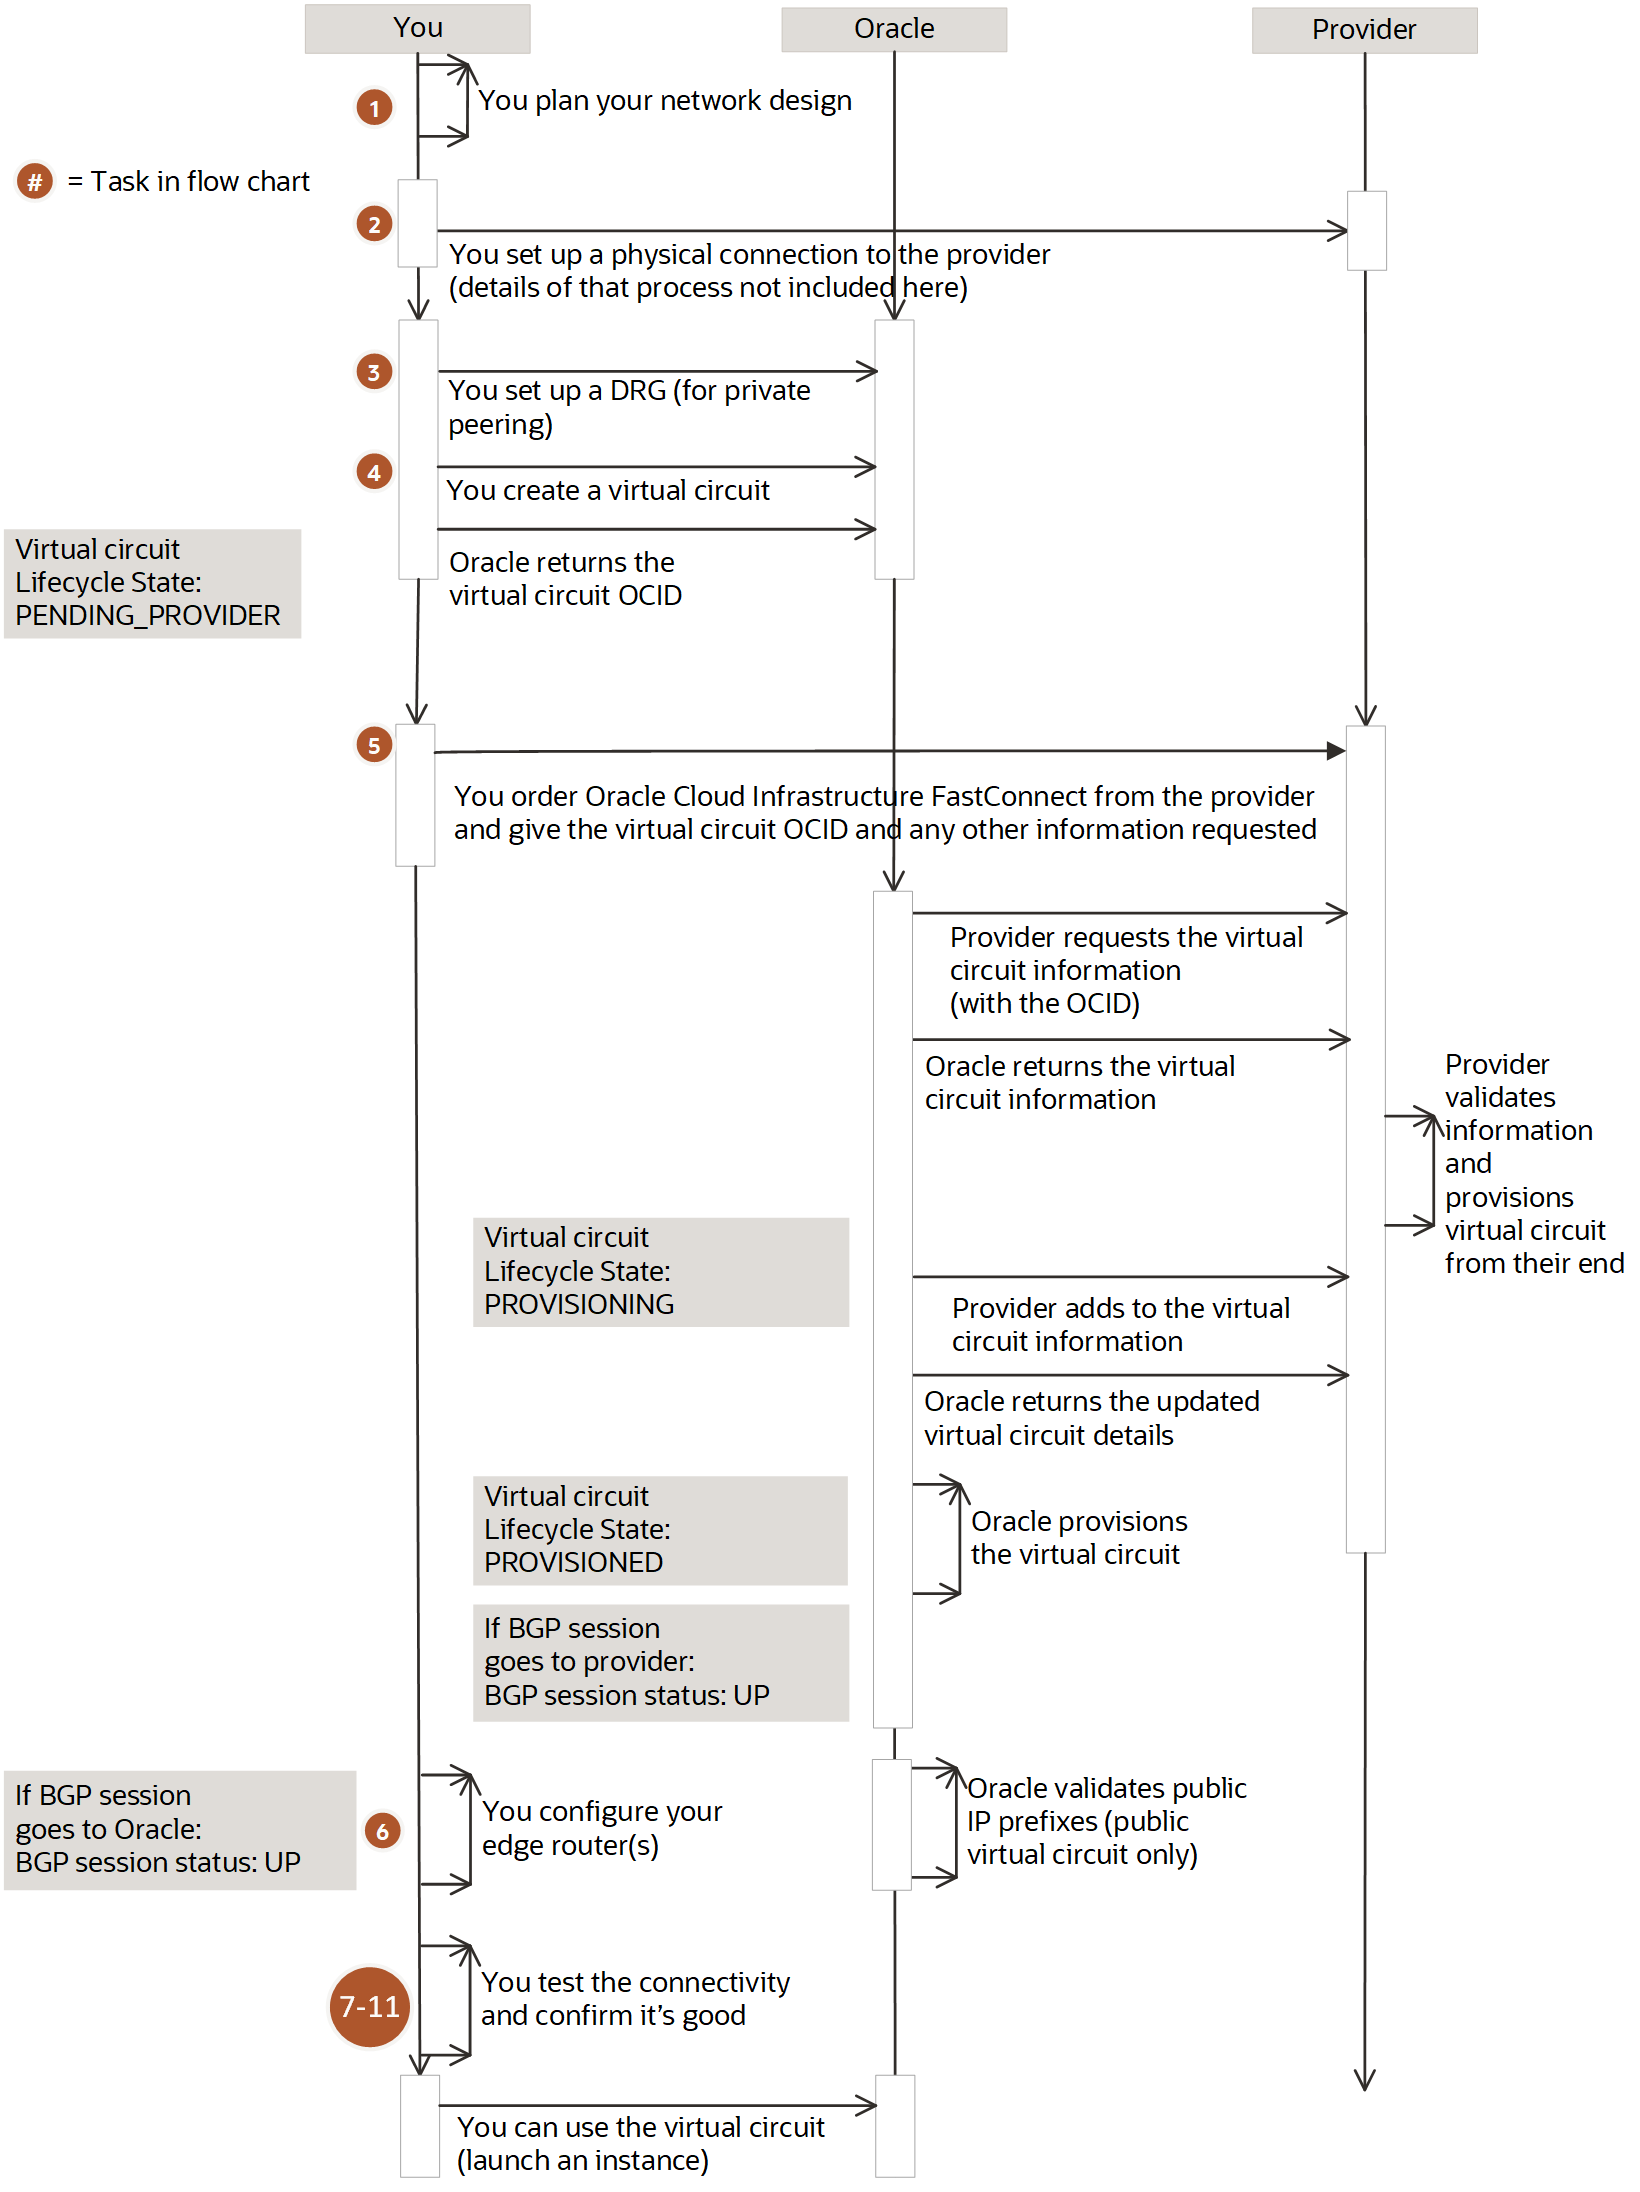 Fastconnect With An Oracle Provider Verizon Network Interface Device Wiring Diagram This Image Shows A Sequence The Different Virtual Circuit States